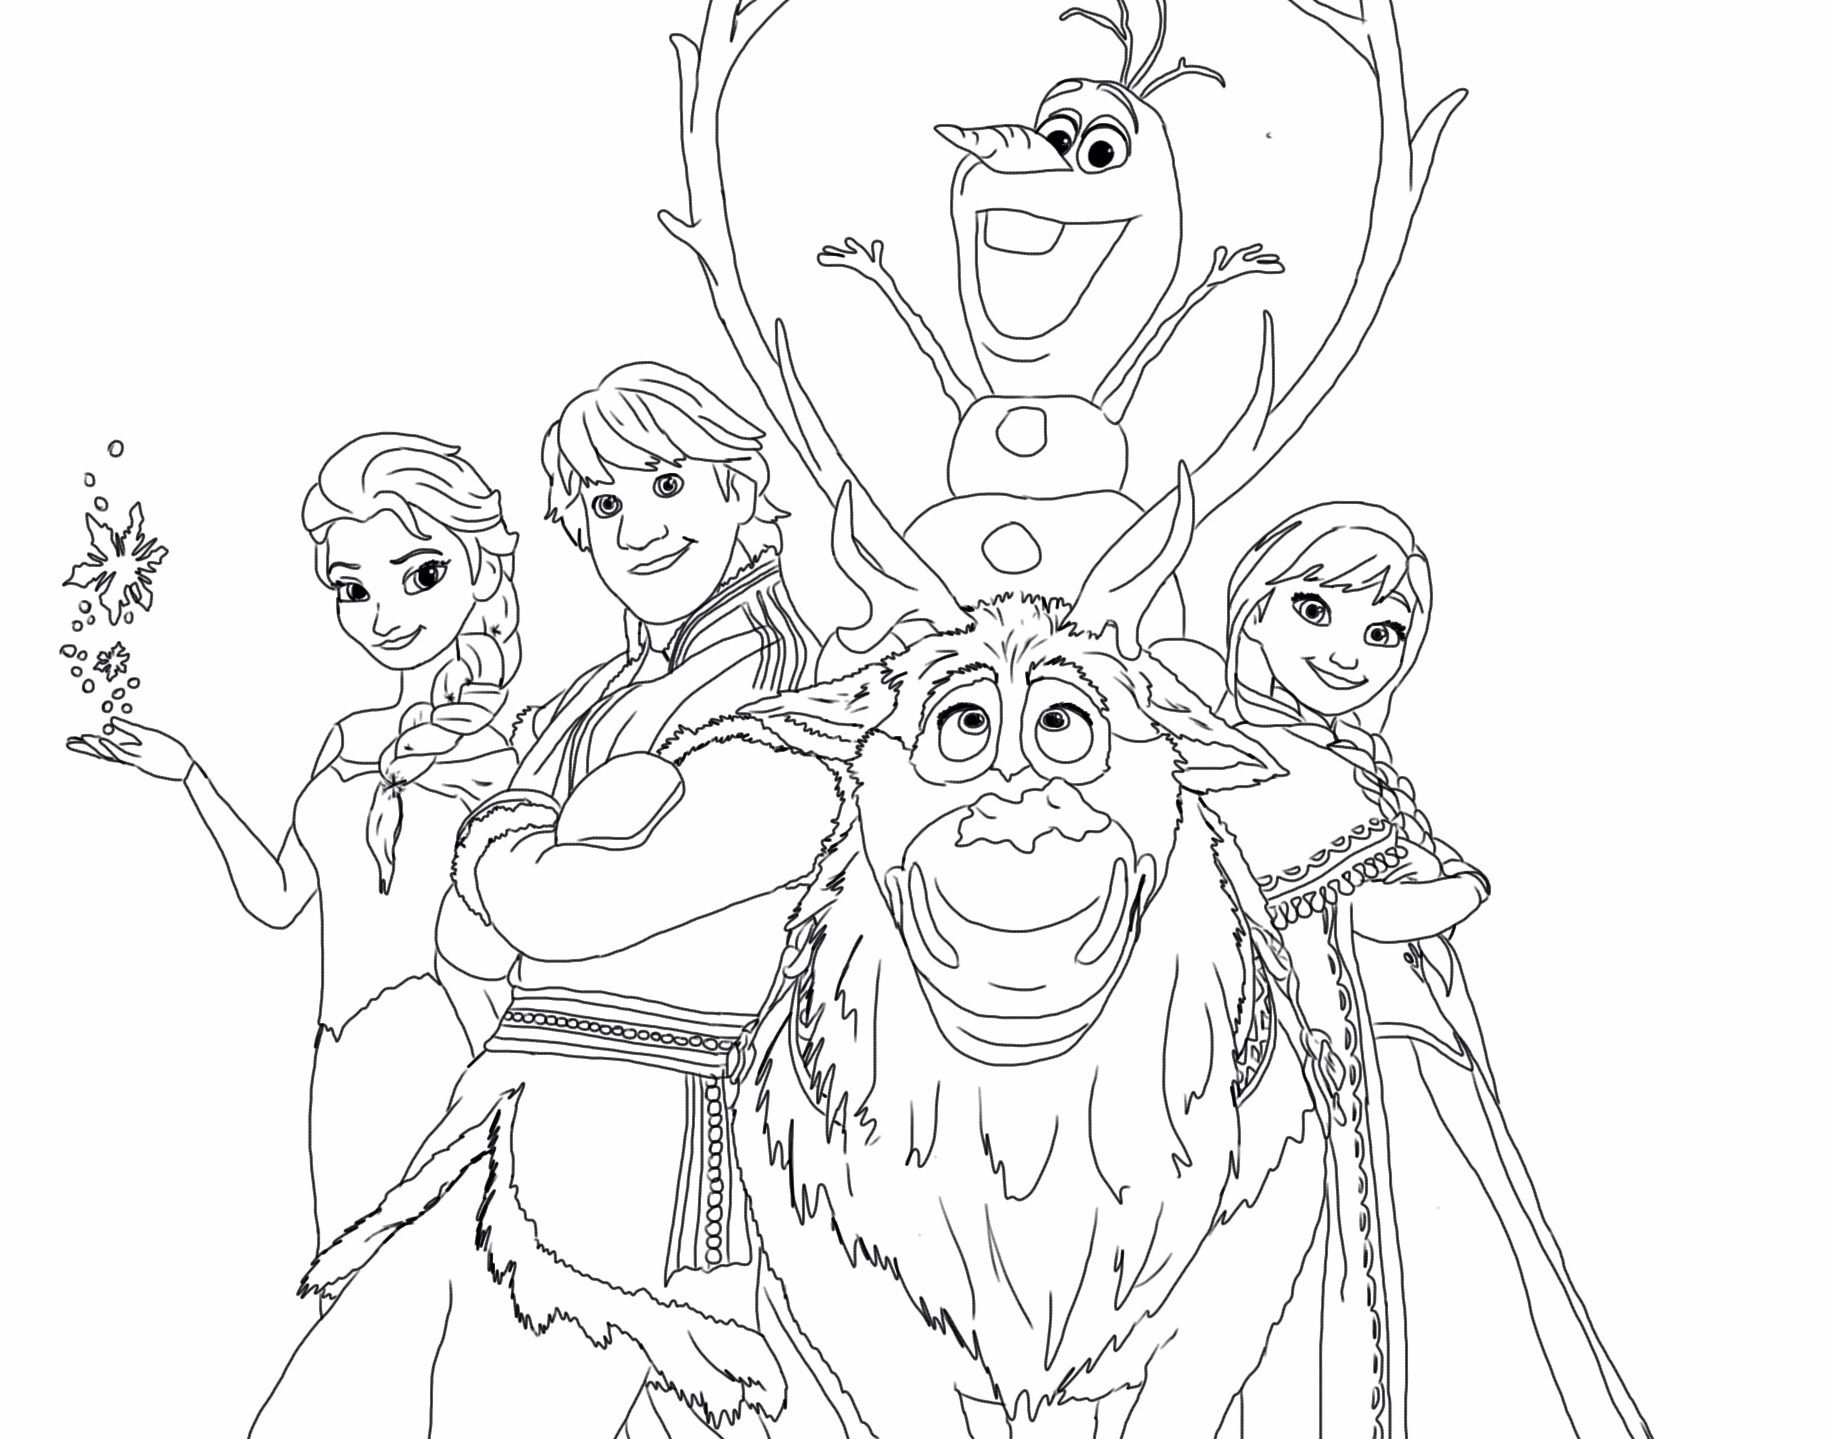 Coloring page of Frozen characters. | My Free Coloring Pages ...